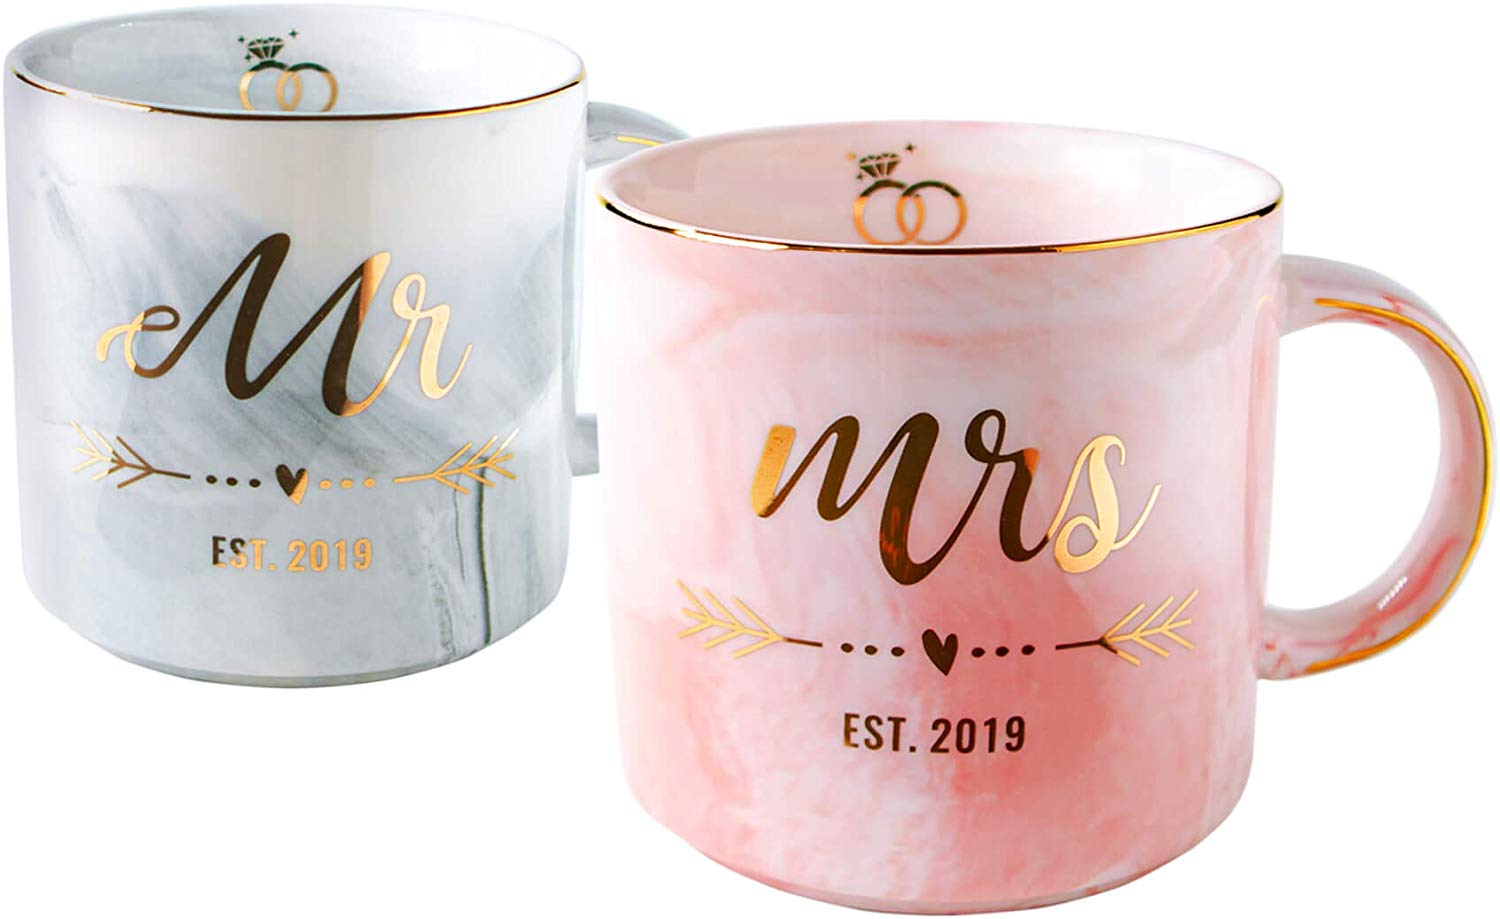 Vilight Wedding Gifts for The Couple - Unique Bridal Shower Gifts for Bride and Groom - Mr and Mrs Mugs for Newlywed 2019 - Marble Coffee Cups Set